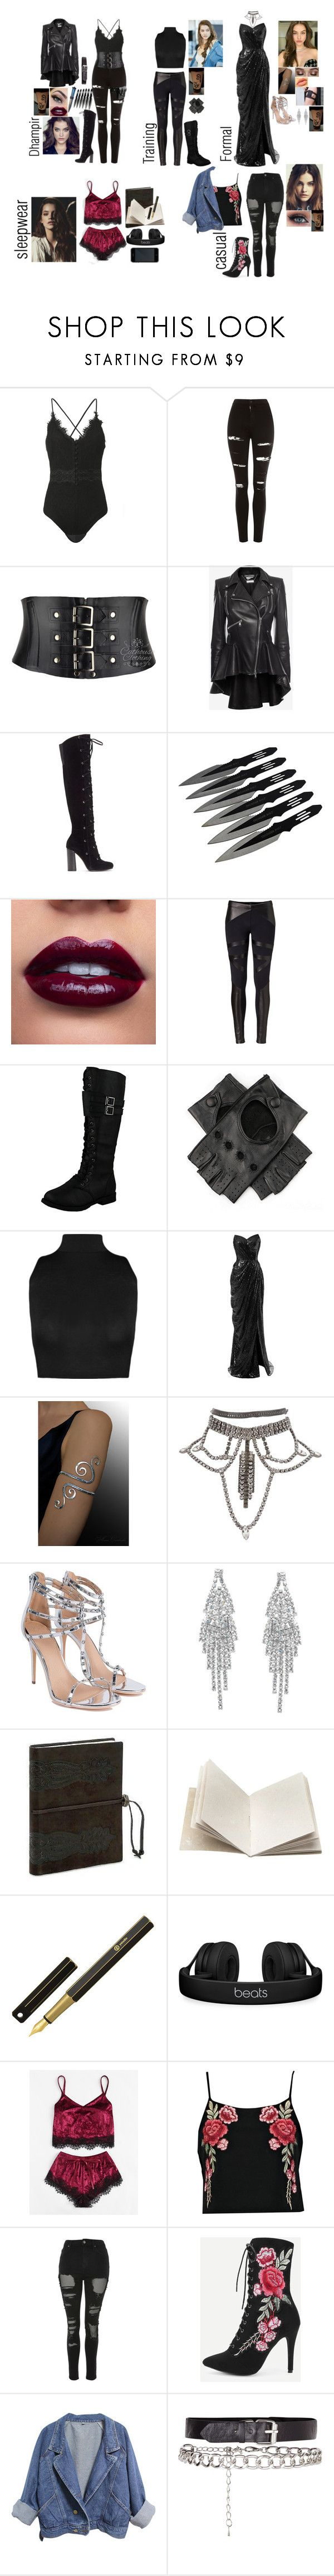 """""""Vampire Academy OC : Astoria 'Tori ' Augustine"""" by silentdoll ❤ liked on Polyvore featuring Jonathan Simkhai, Topshop, Alexander McQueen, Vince Camuto, David Lerner, Black, WearAll, Rune NYC, Humble Chic and Cullen"""